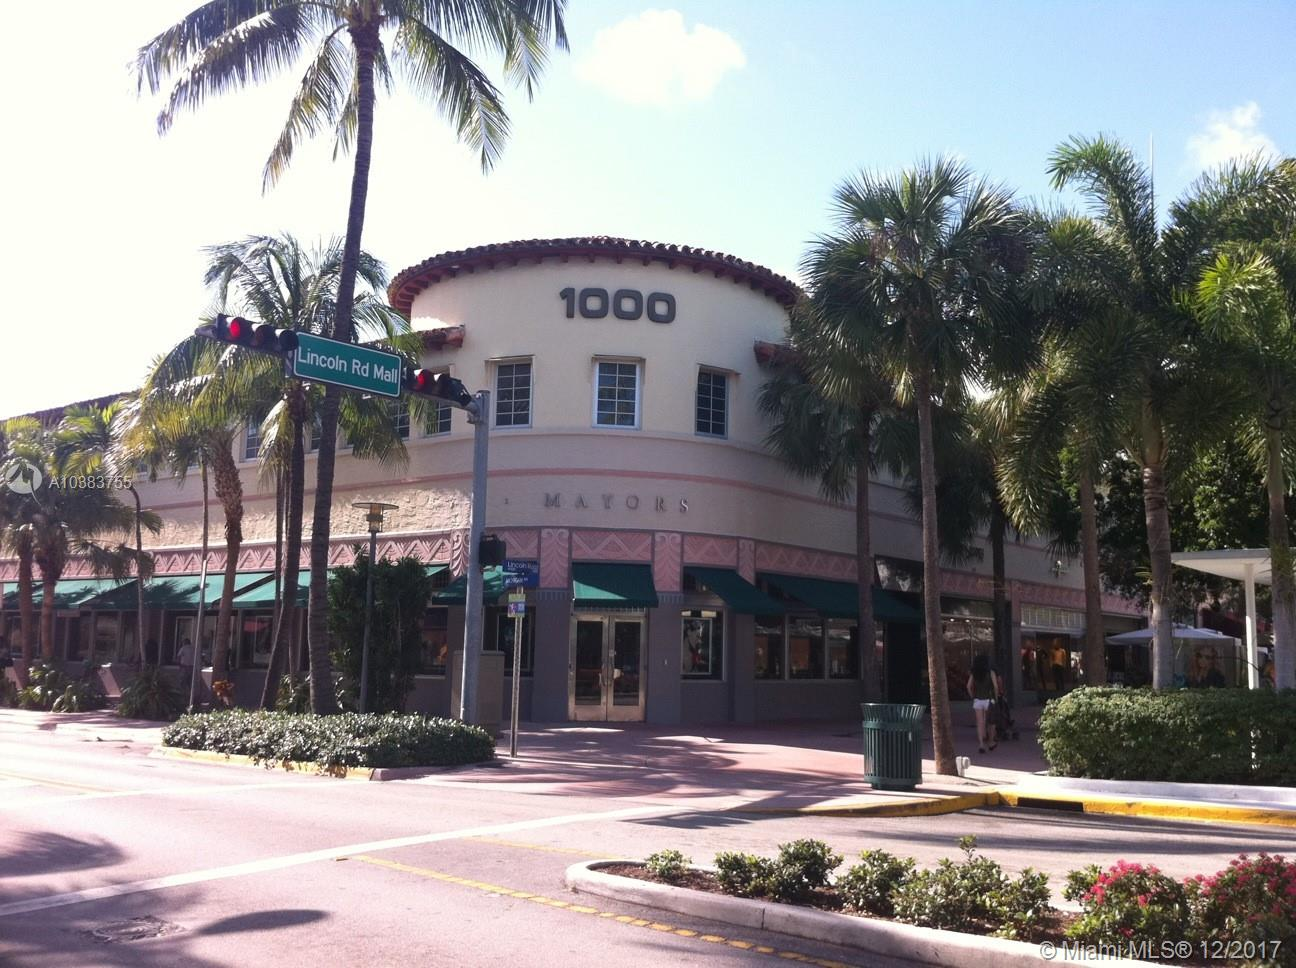 1000 Lincoln Rd # 250, Miami Beach, Florida 33139, ,Commercial Sale,For Sale,1000 Lincoln Rd # 250,A10383755